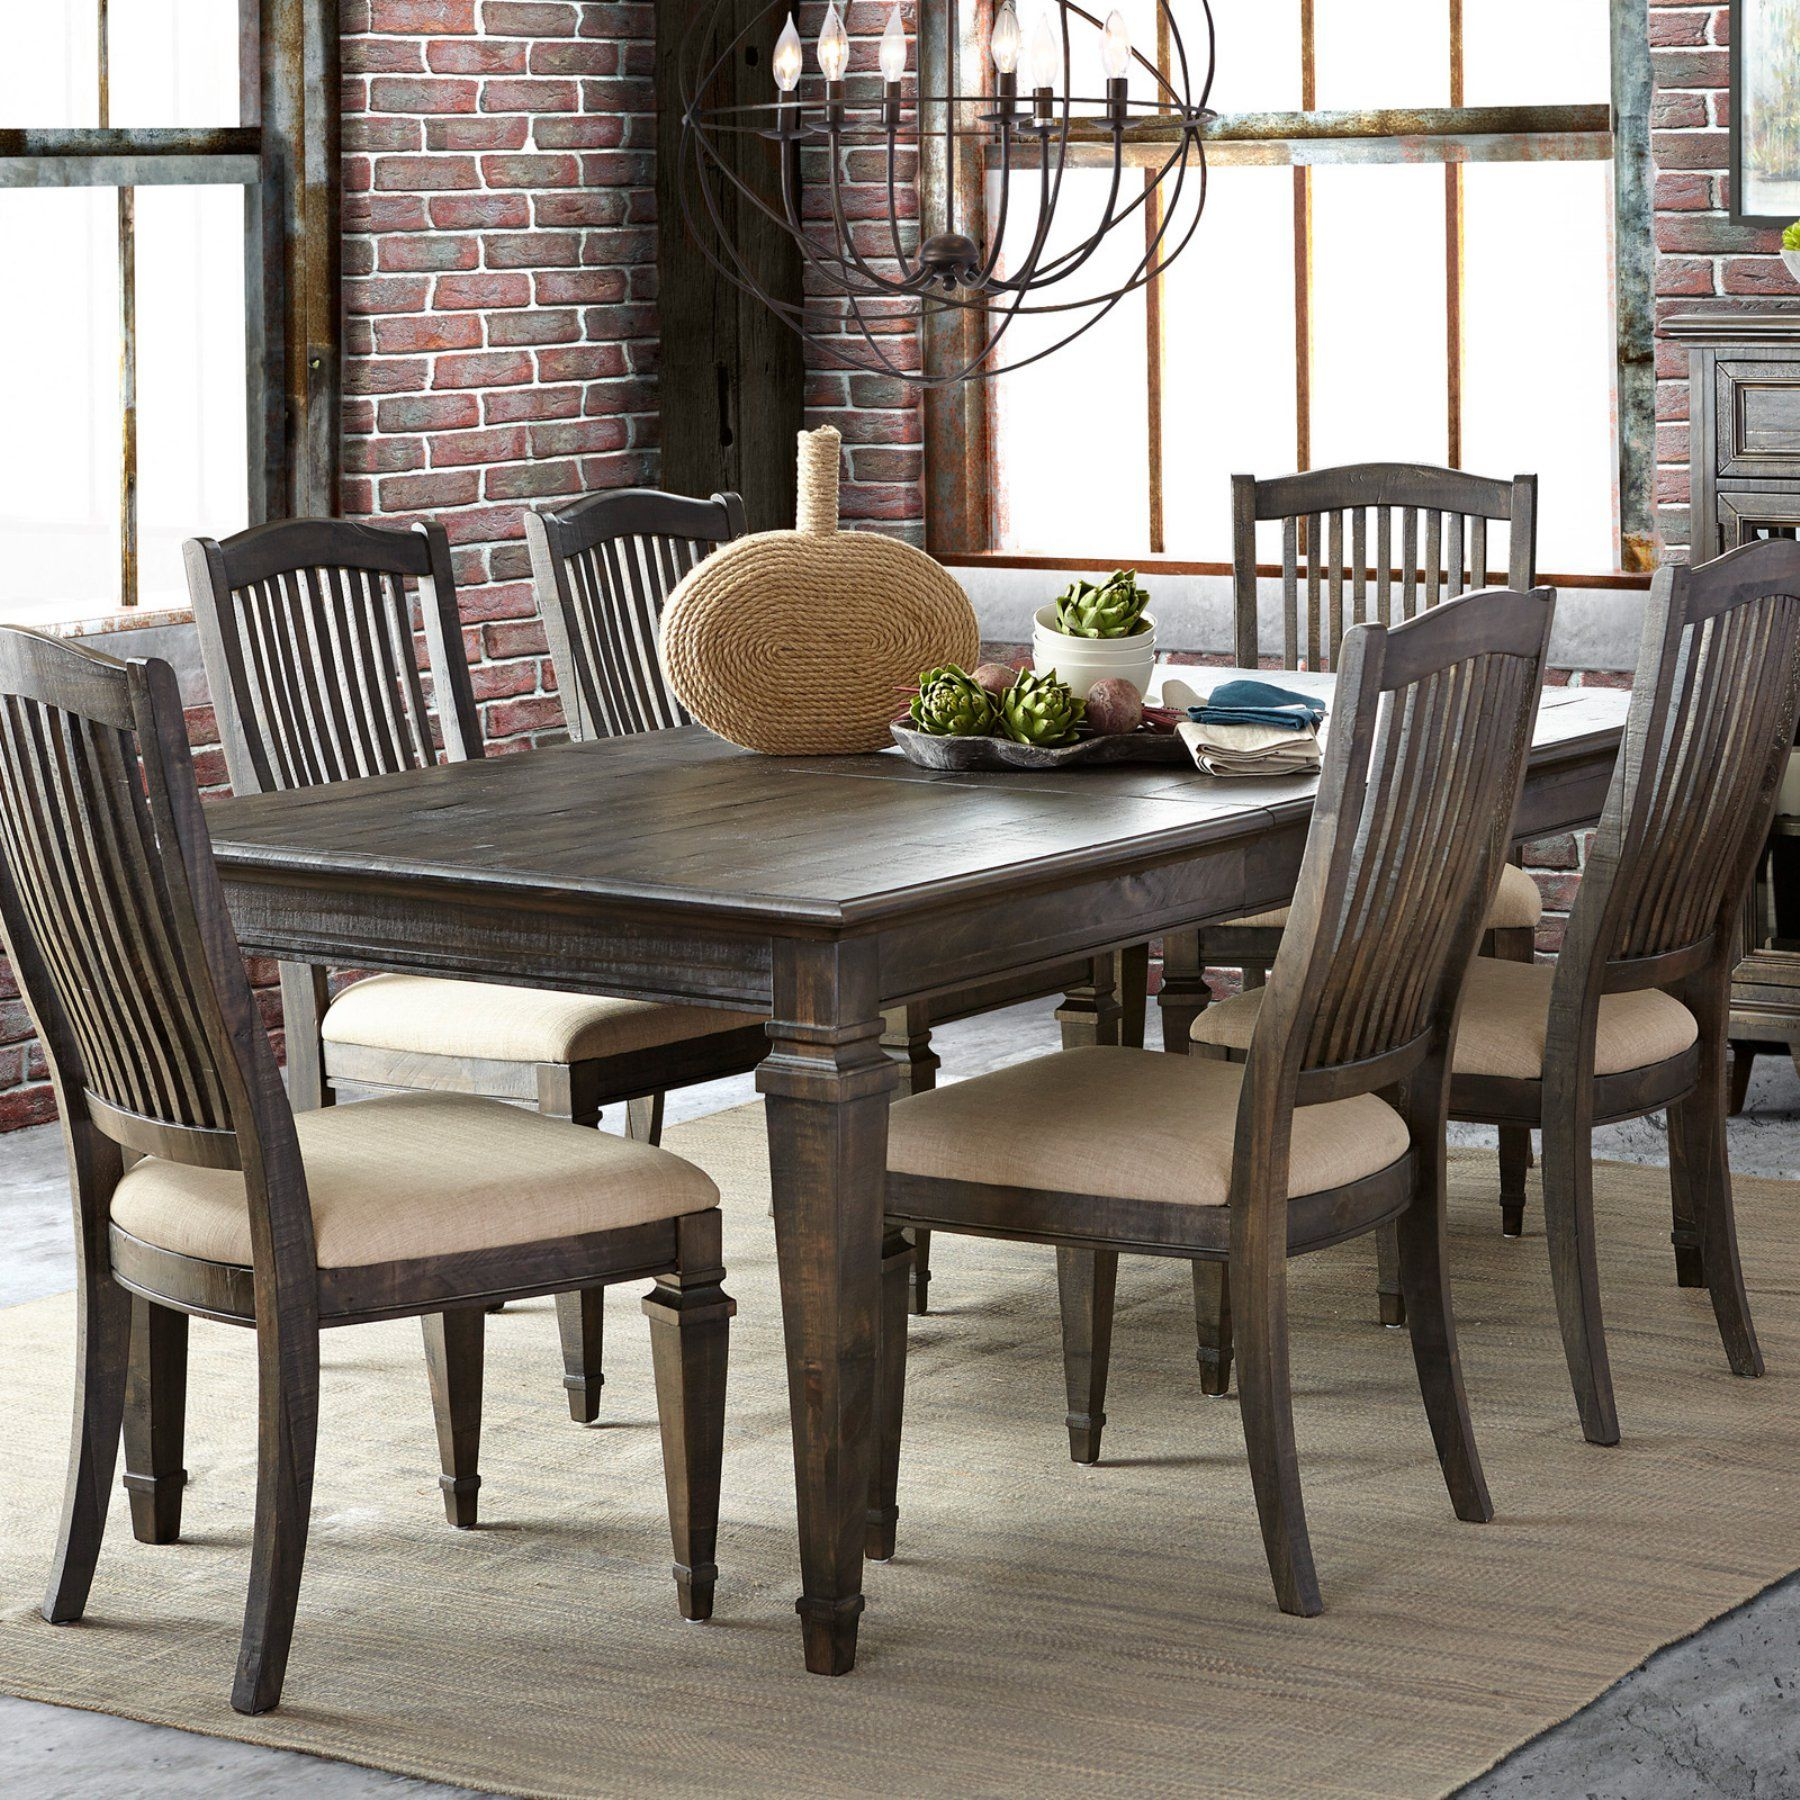 Magnussen Sutton Place Dining Table Mhf2441 Rectangular Dining